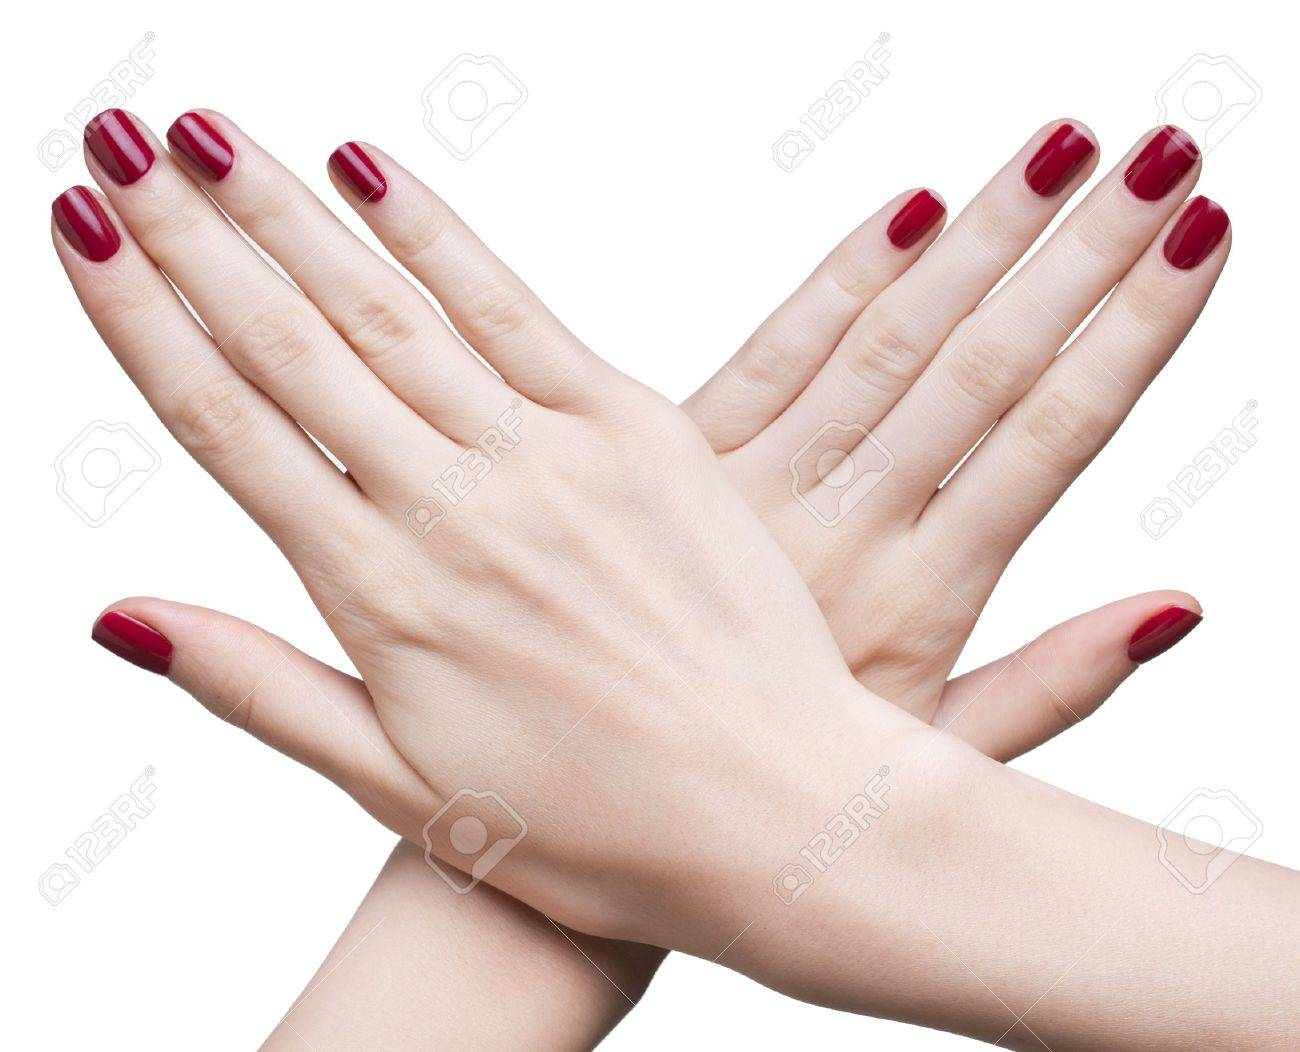 hands with woman's professional red nails manicure isolated on white Stock Photo - 17460676